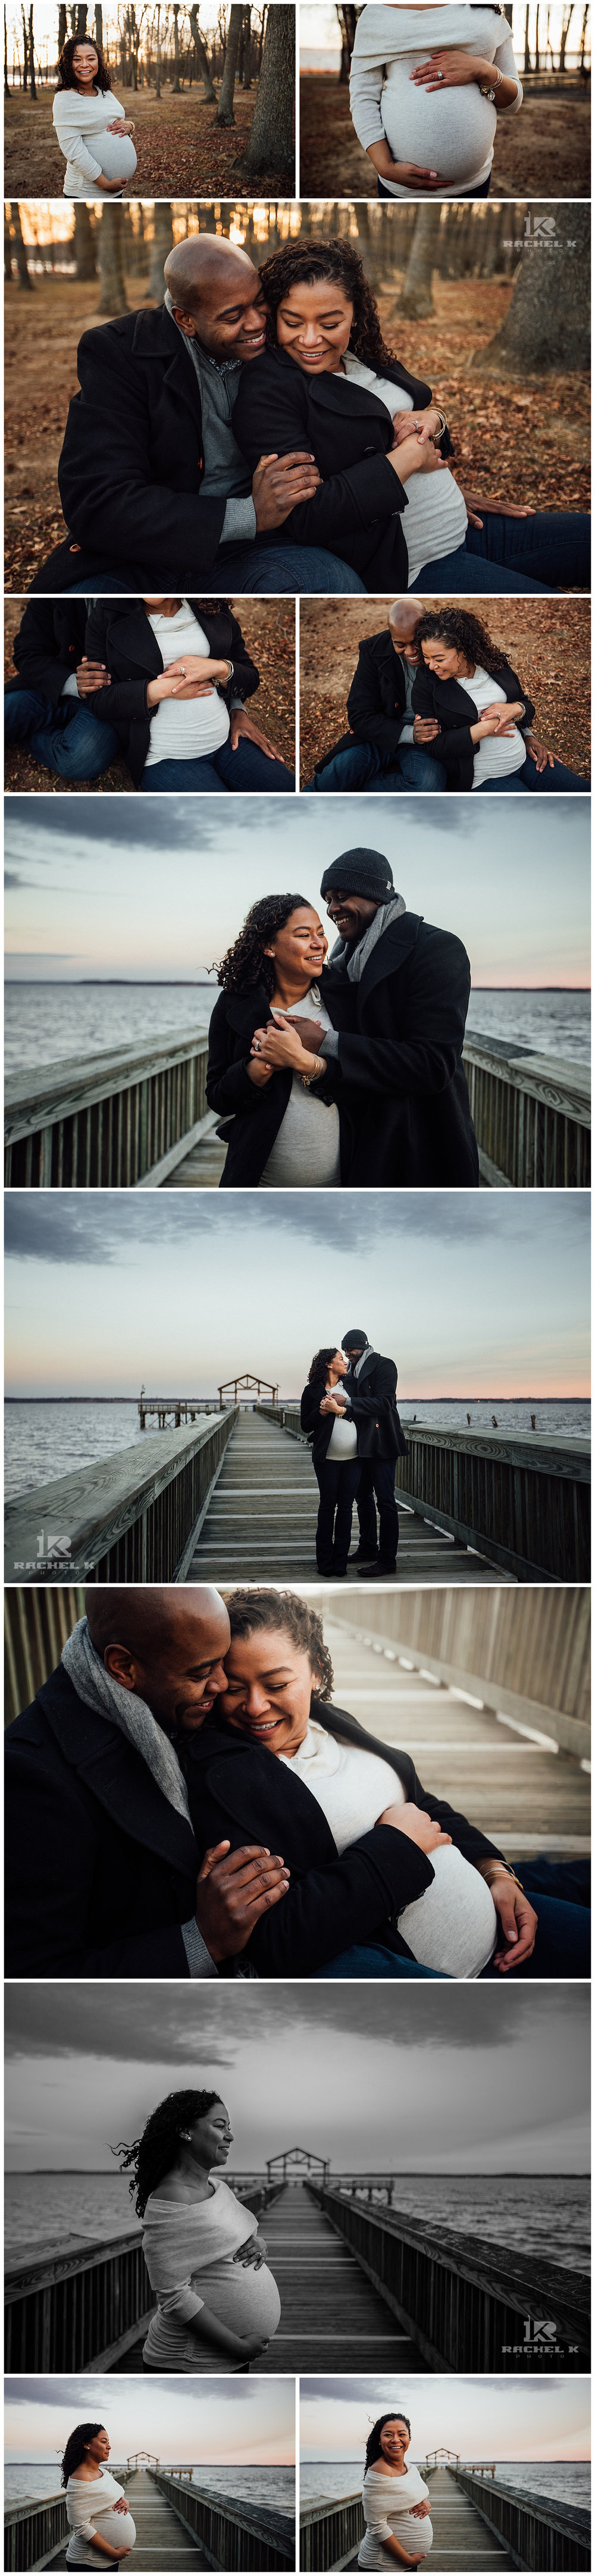 Lifestyle maternity session with emotion by Fairfax photographer Rachel K Photo